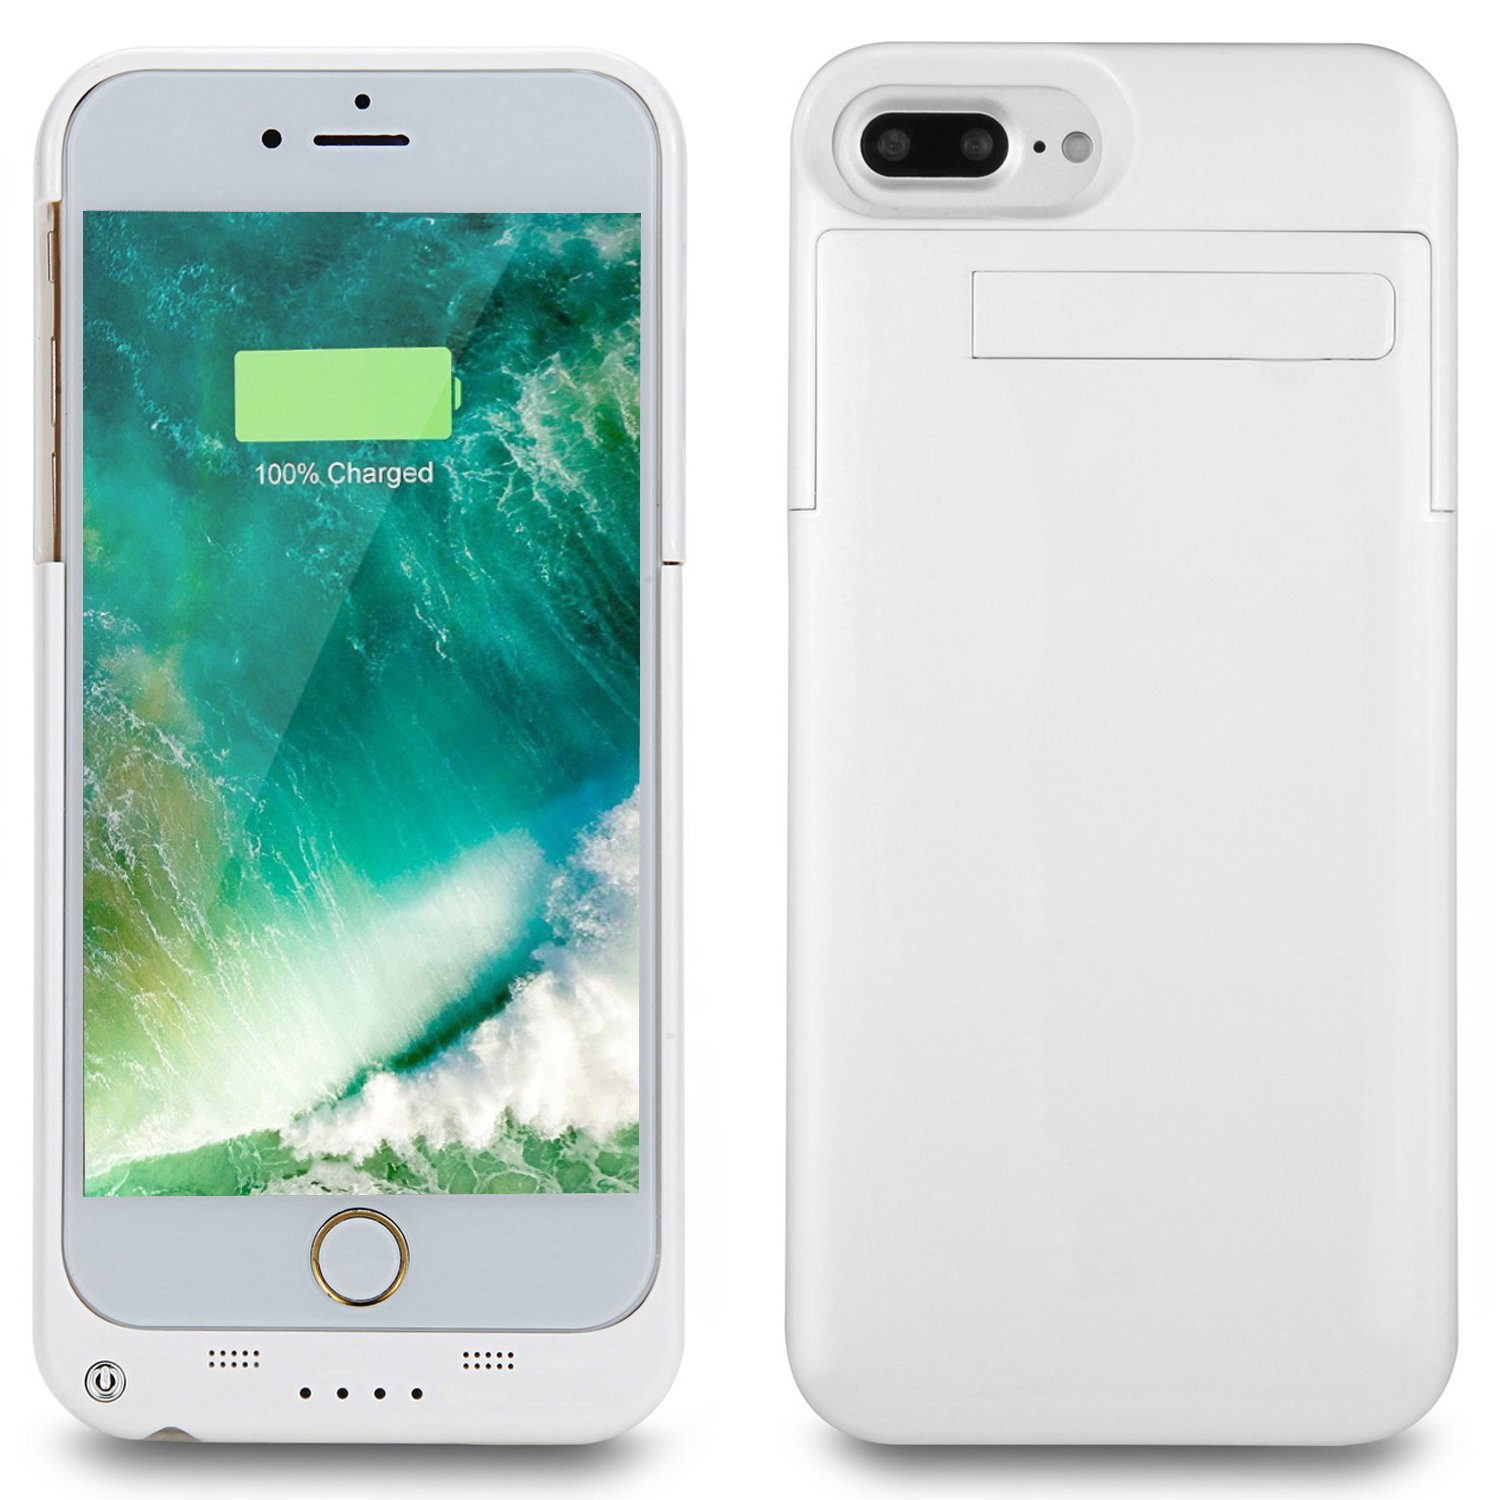 iphone 7 plus charger case white